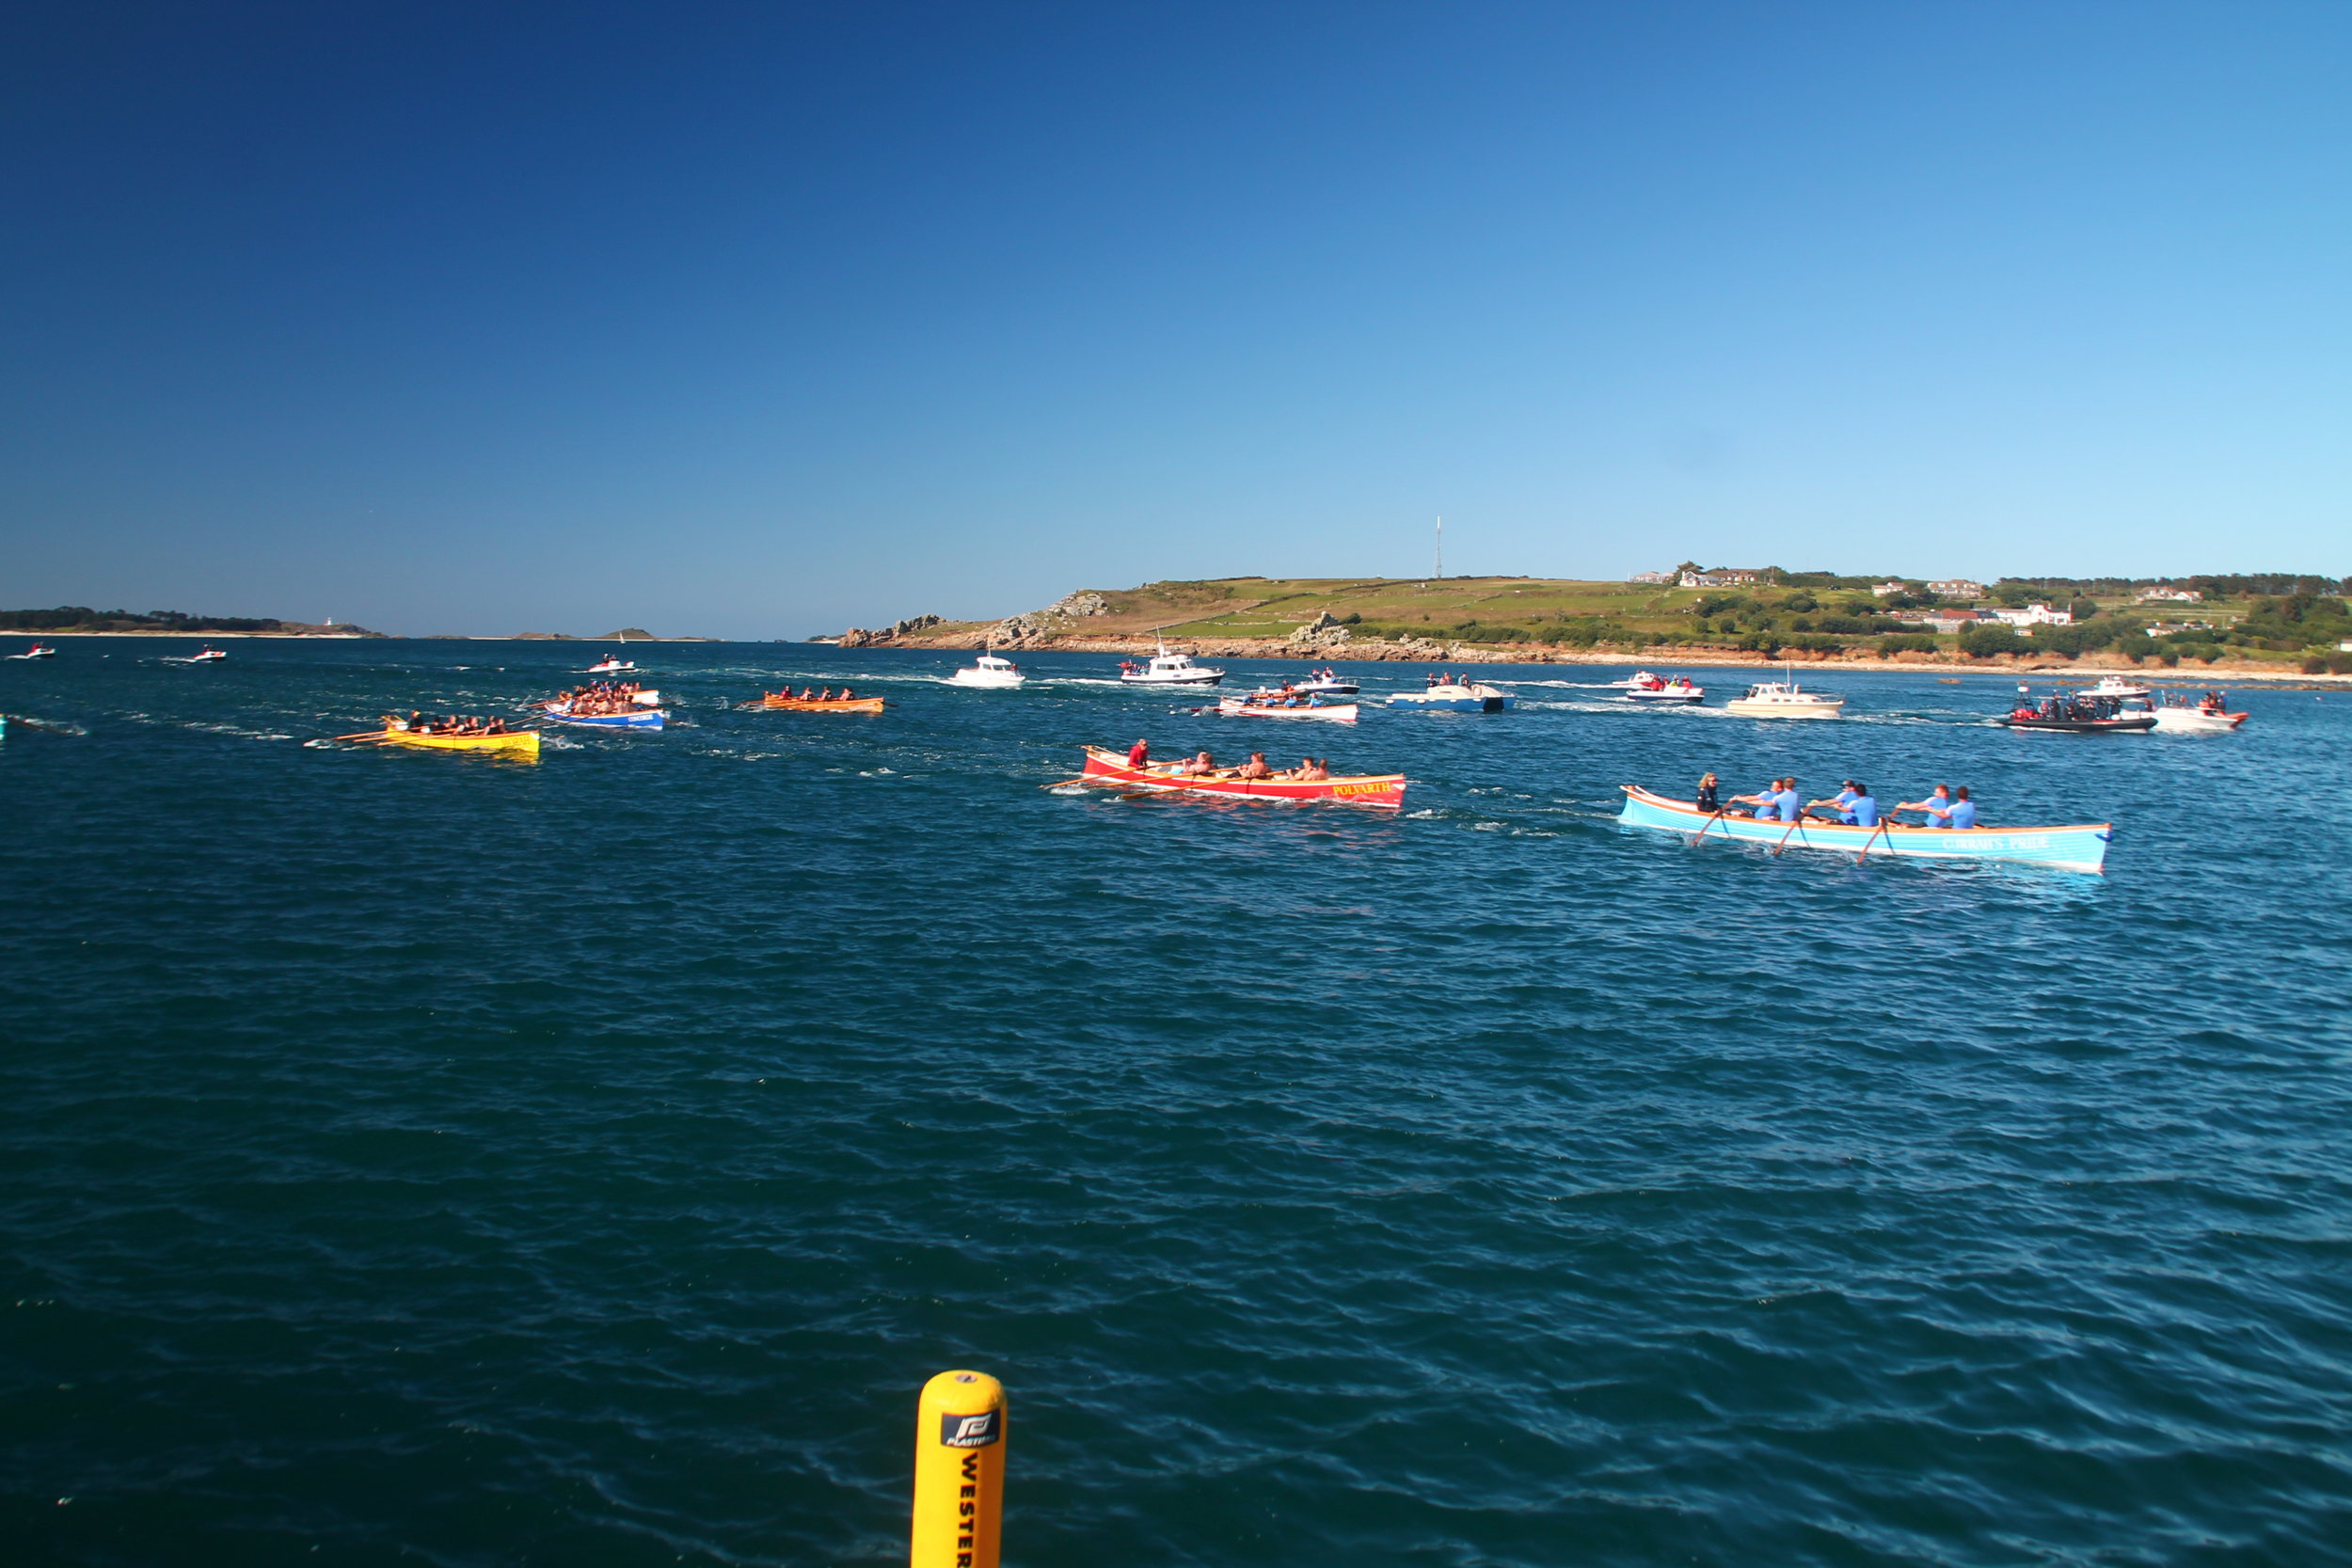 thane Sullivan told Radio Scilly that the sport's growth means the Championships will inevitably move in a slightly different direction as a restriction on the number of gigs comes into force next year.